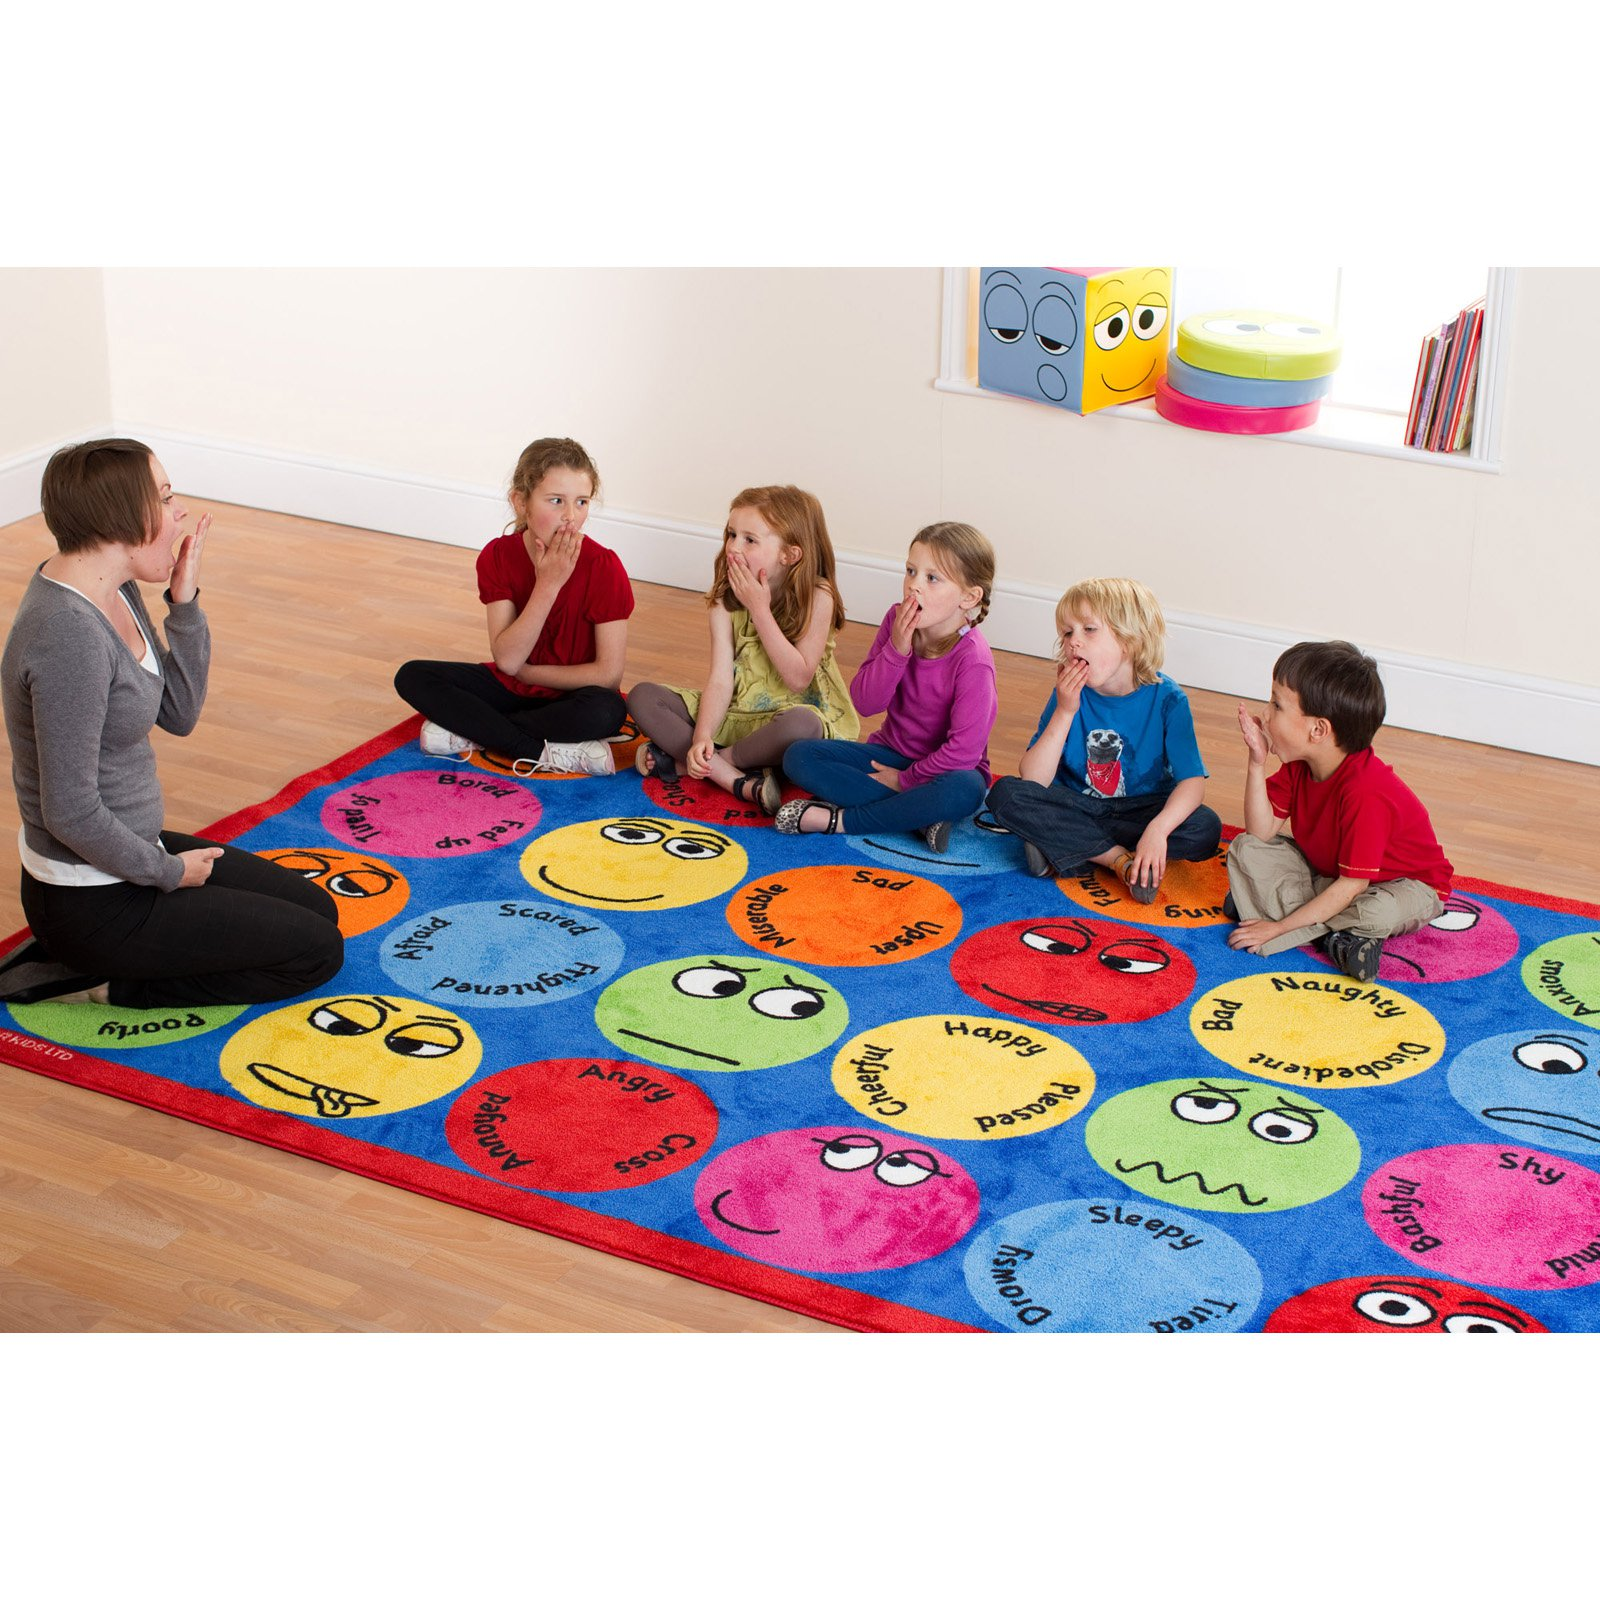 Kalokids Emotions Interactive Rectangular Carpet